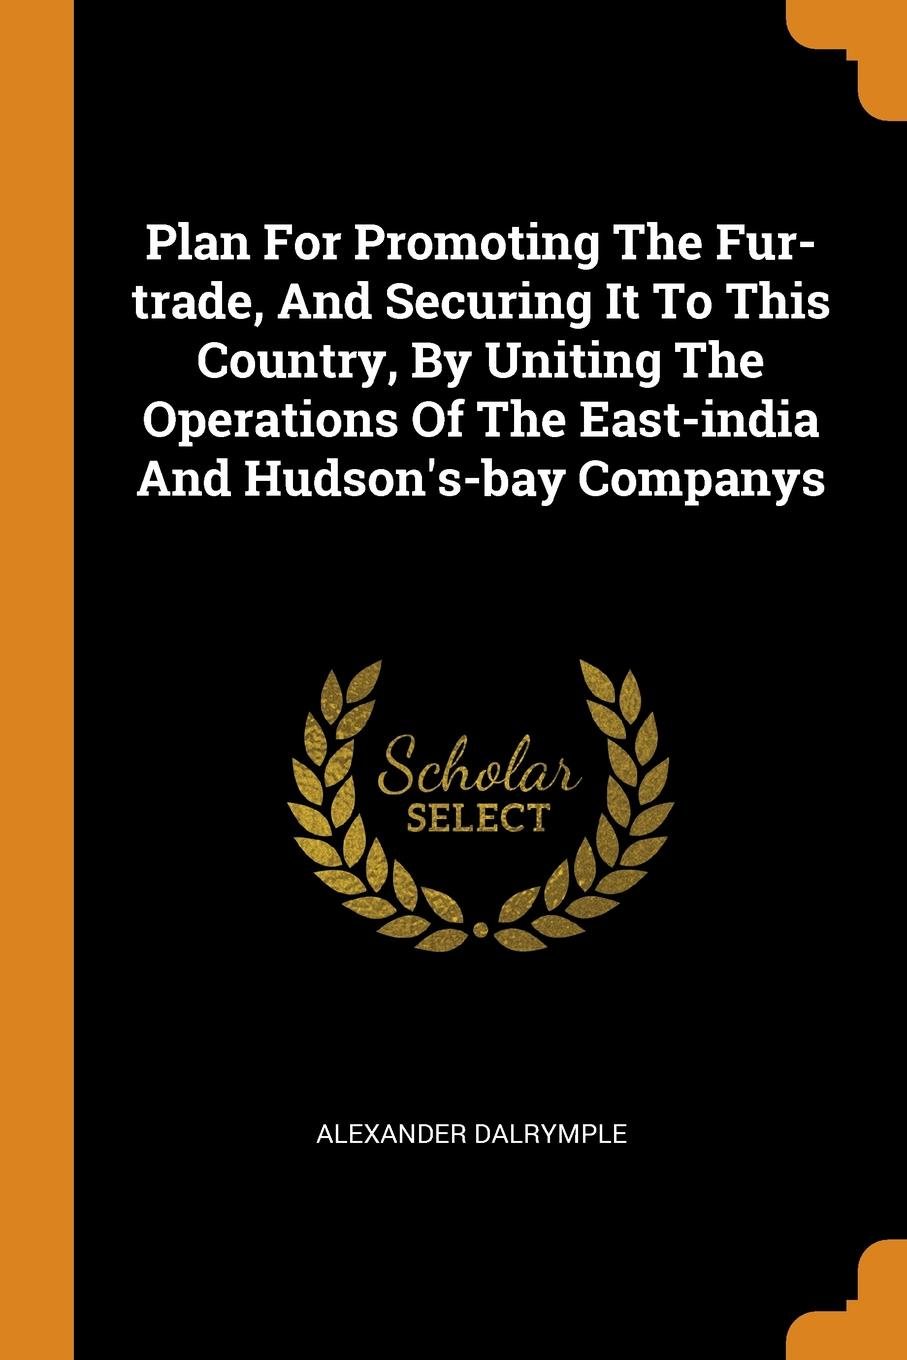 Plan For Promoting The Fur-trade, And Securing It To This Country, By Uniting The Operations Of The East-india And Hudson.s-bay Companys